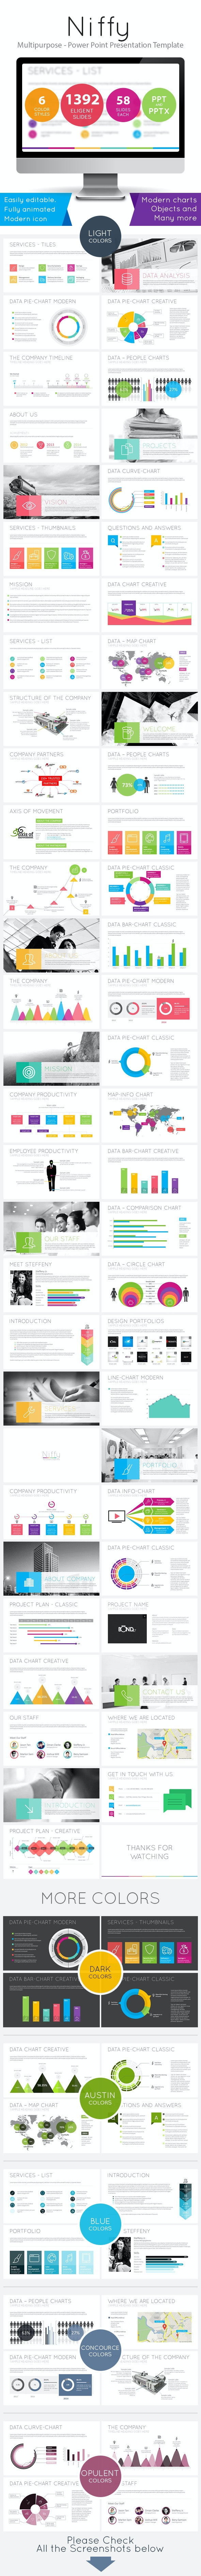 Niffy - Multipurpose Power Point Presentation - PowerPoint Templates Presentation Templates